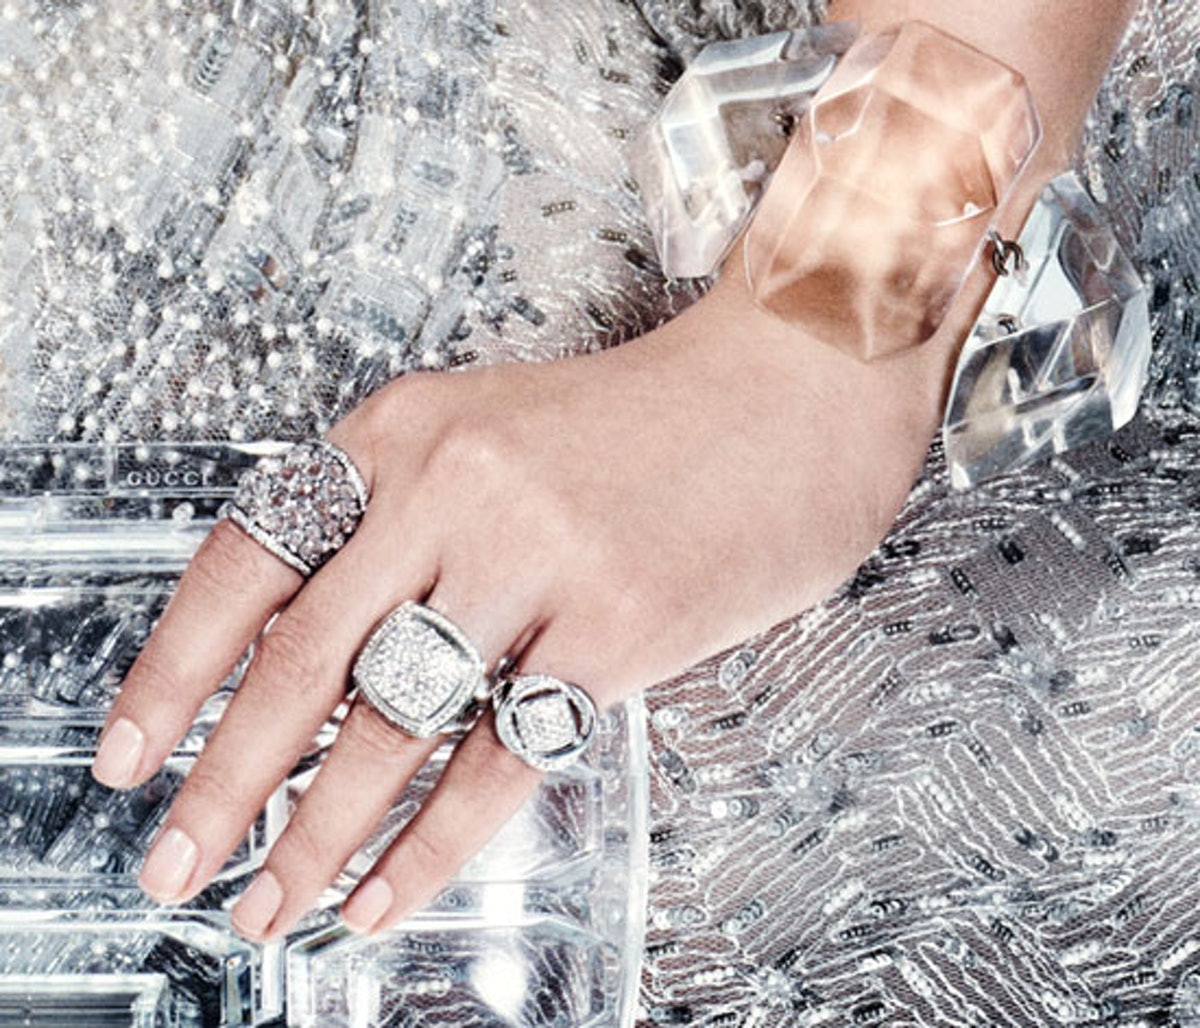 acss-clear-accessories-03-v.jpg